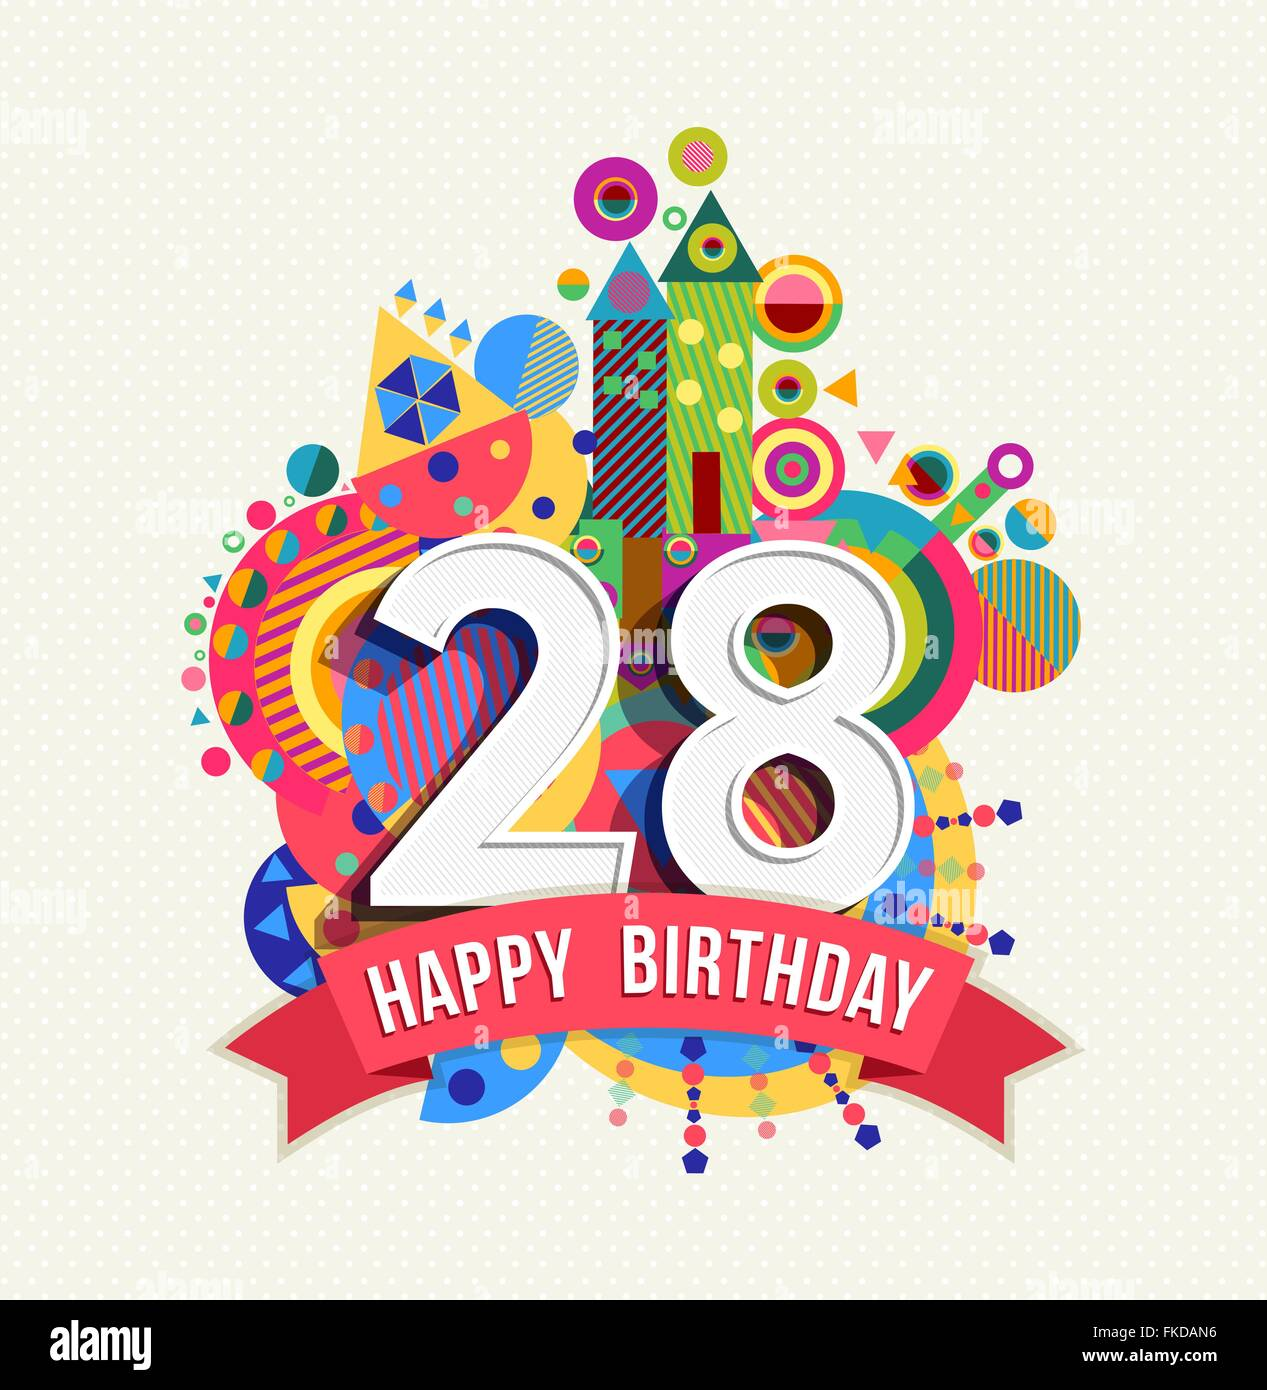 Happy Birthday Twenty Eight 28 Year Fun Celebration Anniversary Greeting Card With Number Text Label And Colorful Geometry